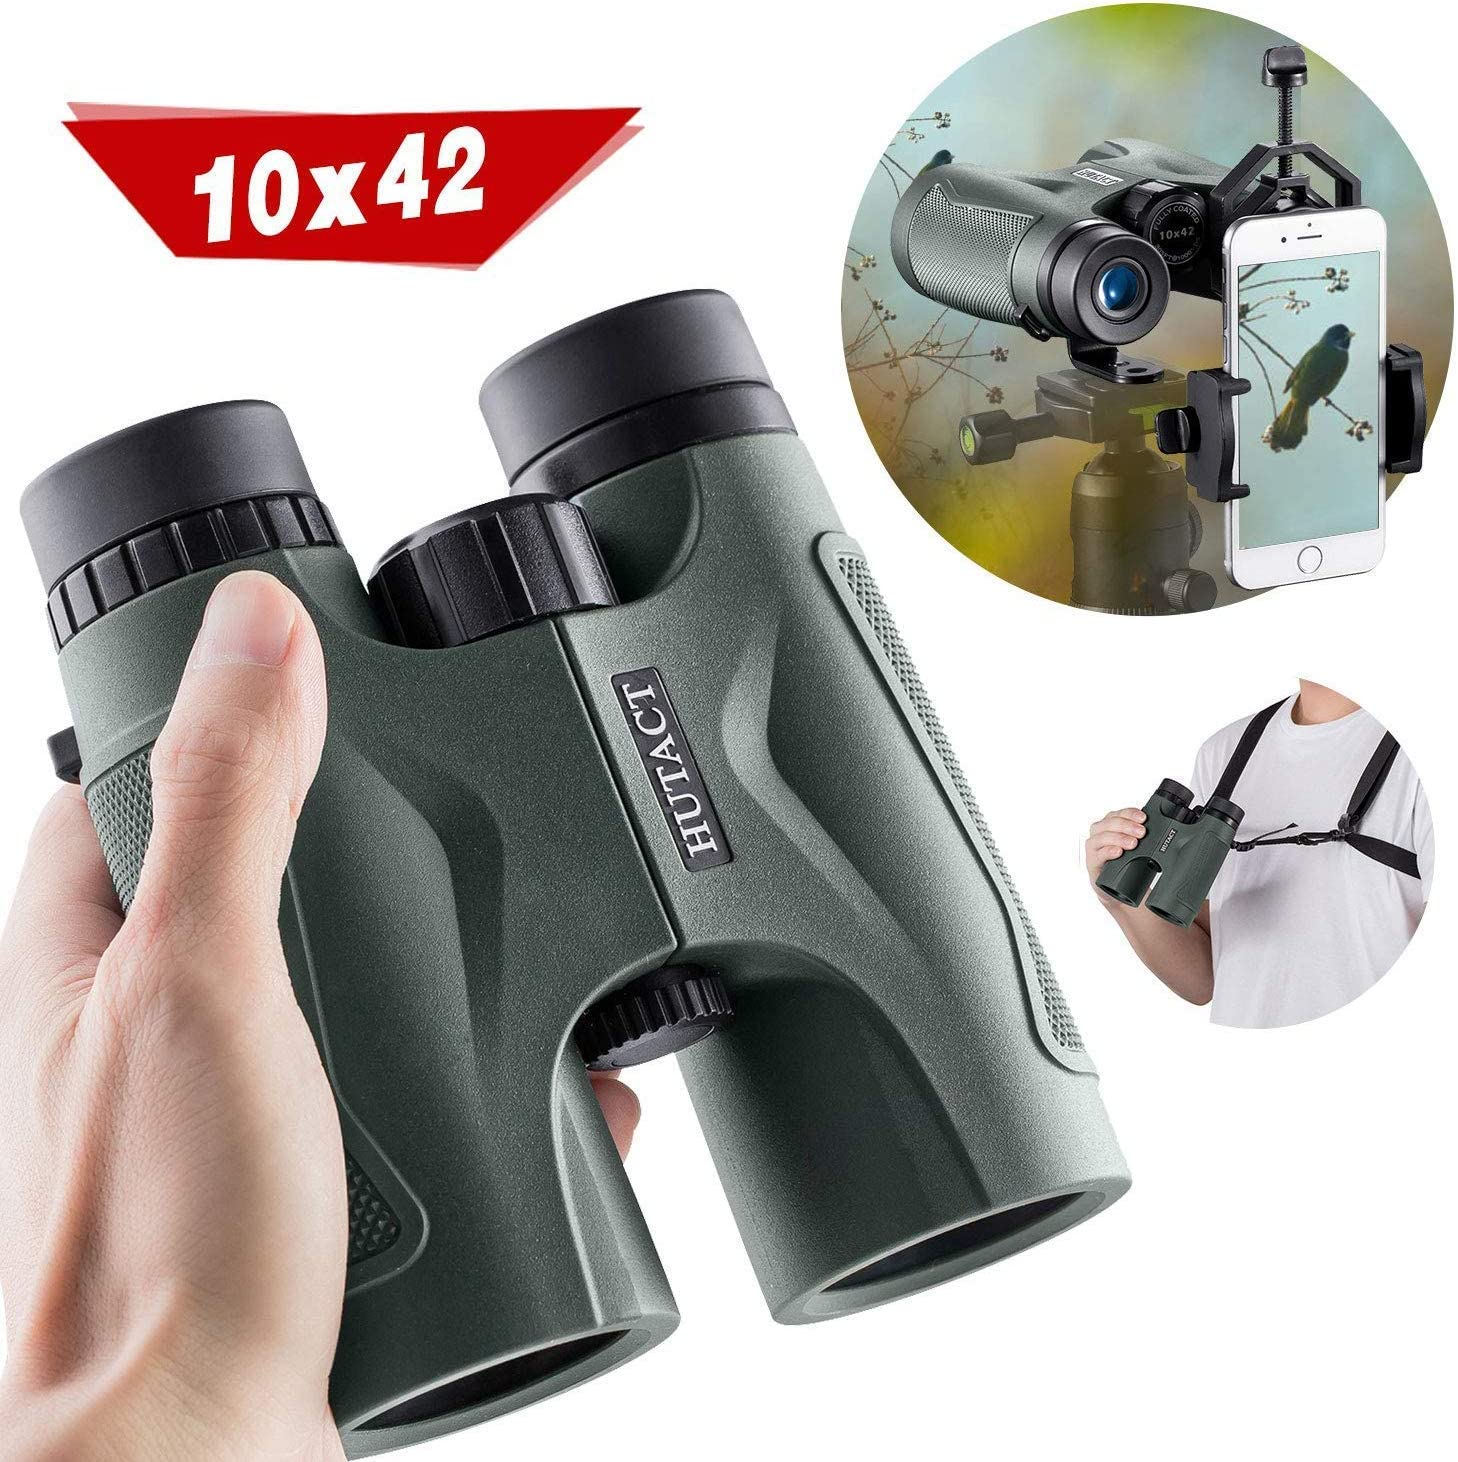 HUTACT Binoculars for Adults, 10×42 Compact Binoculars for Birdwatching, Hunting, Travel BAK4 Roof Prism Fully Multi Coated Lenses, with Tripod Connector and Telescope Adapter Mount